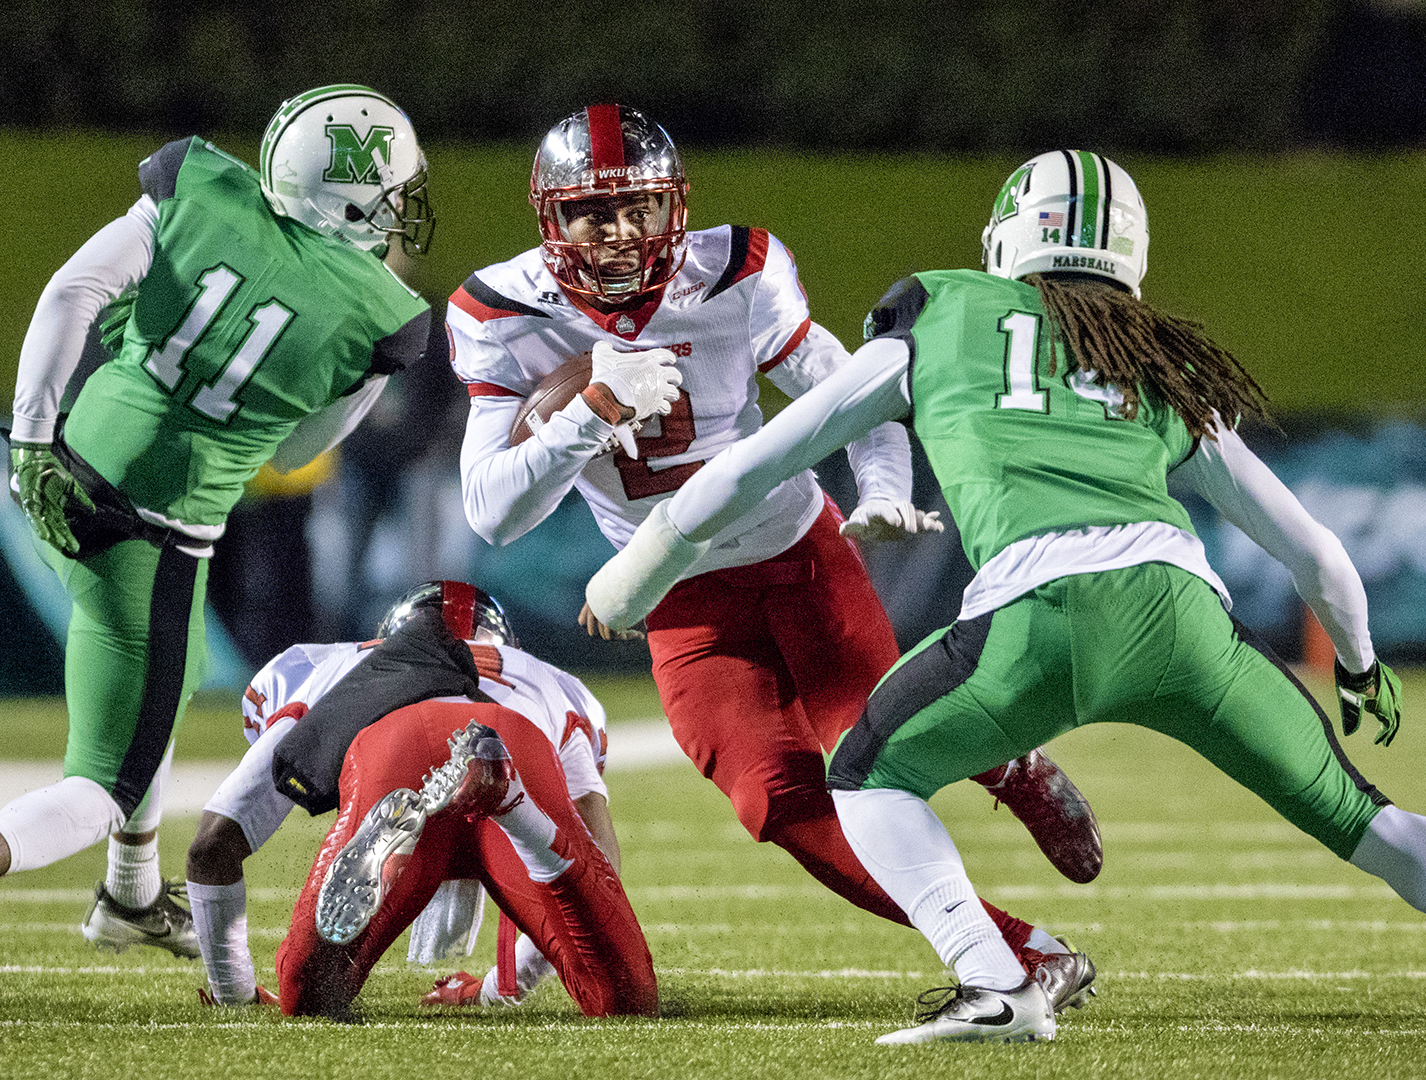 WKU wide receiver Taywan Taylor (2) tries escape a tackle by Marshall University safety Kendall Gant (14) during the Hilltoppers 60-6 win over Marshall on Saturday, Nov. 26th, 2016 at Joan C. Edwards Stadium in Huntington, WV. Evan Boggs / HERALD